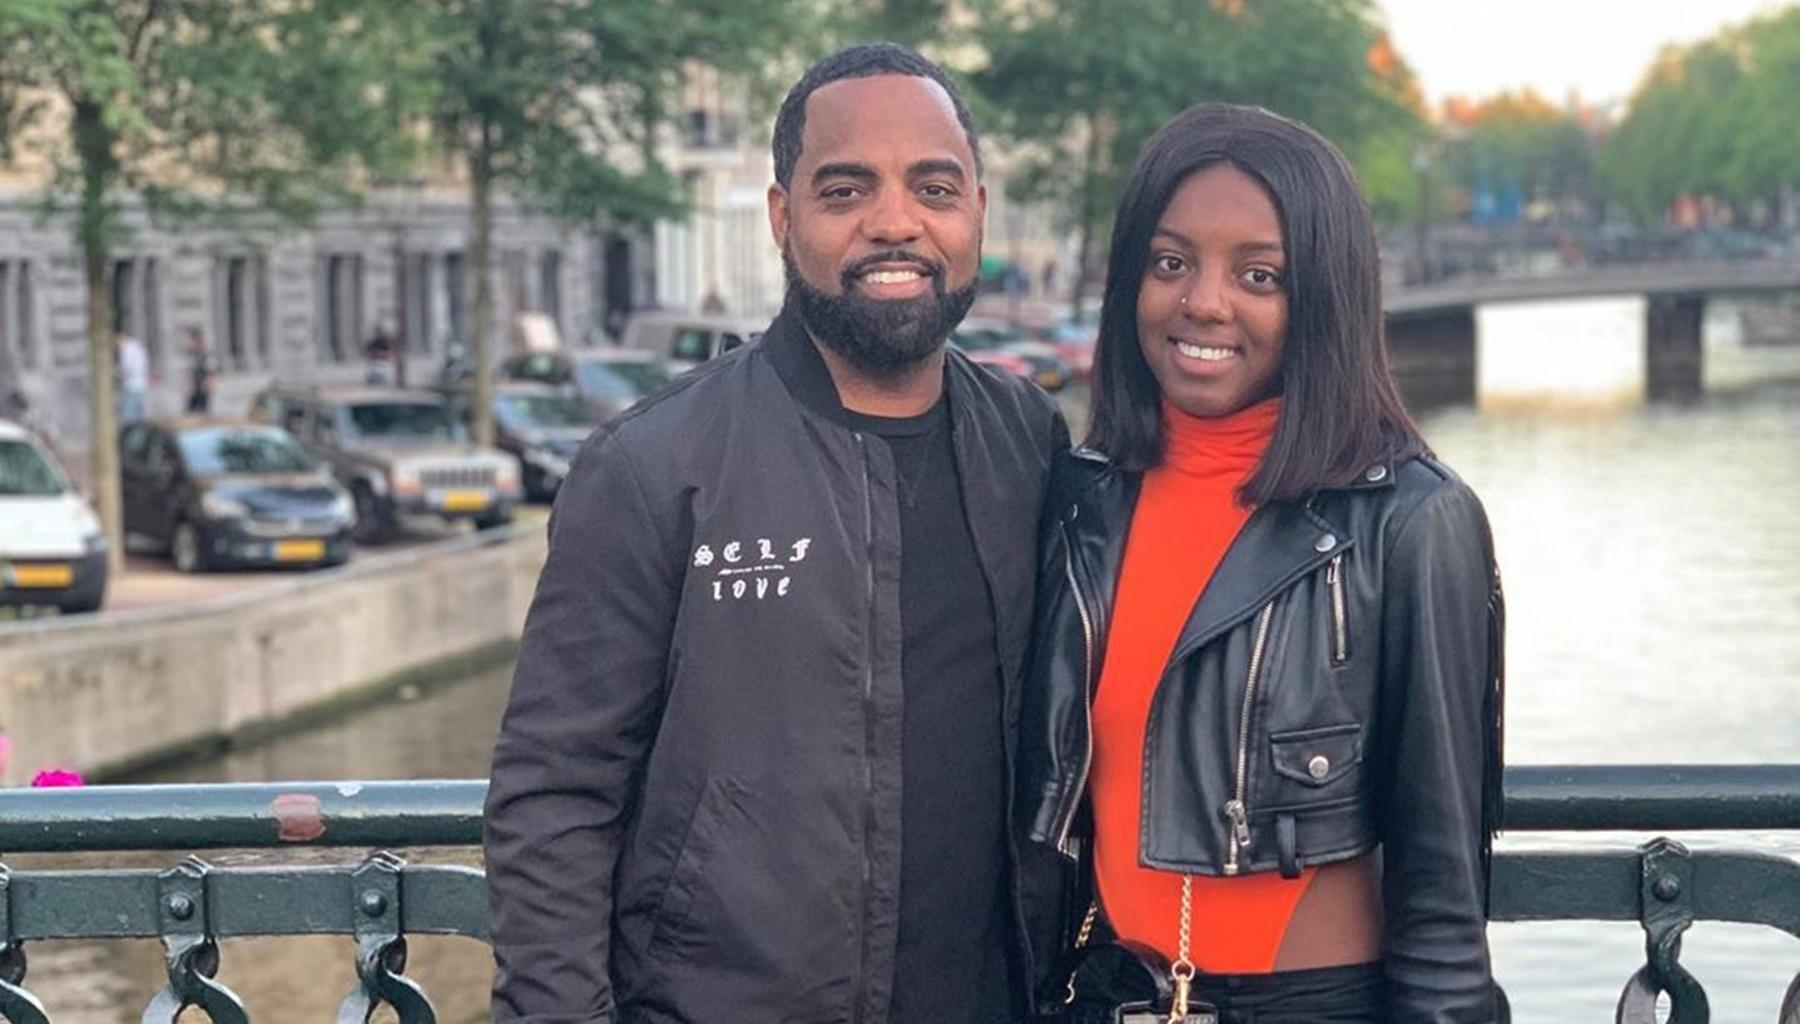 Kandi Burruss Shares Stunning And Unrecognizable Picture Of Todd Tucker's Daughter, Kaela's New Look After Getting Bullied For Not Wearing Makeup